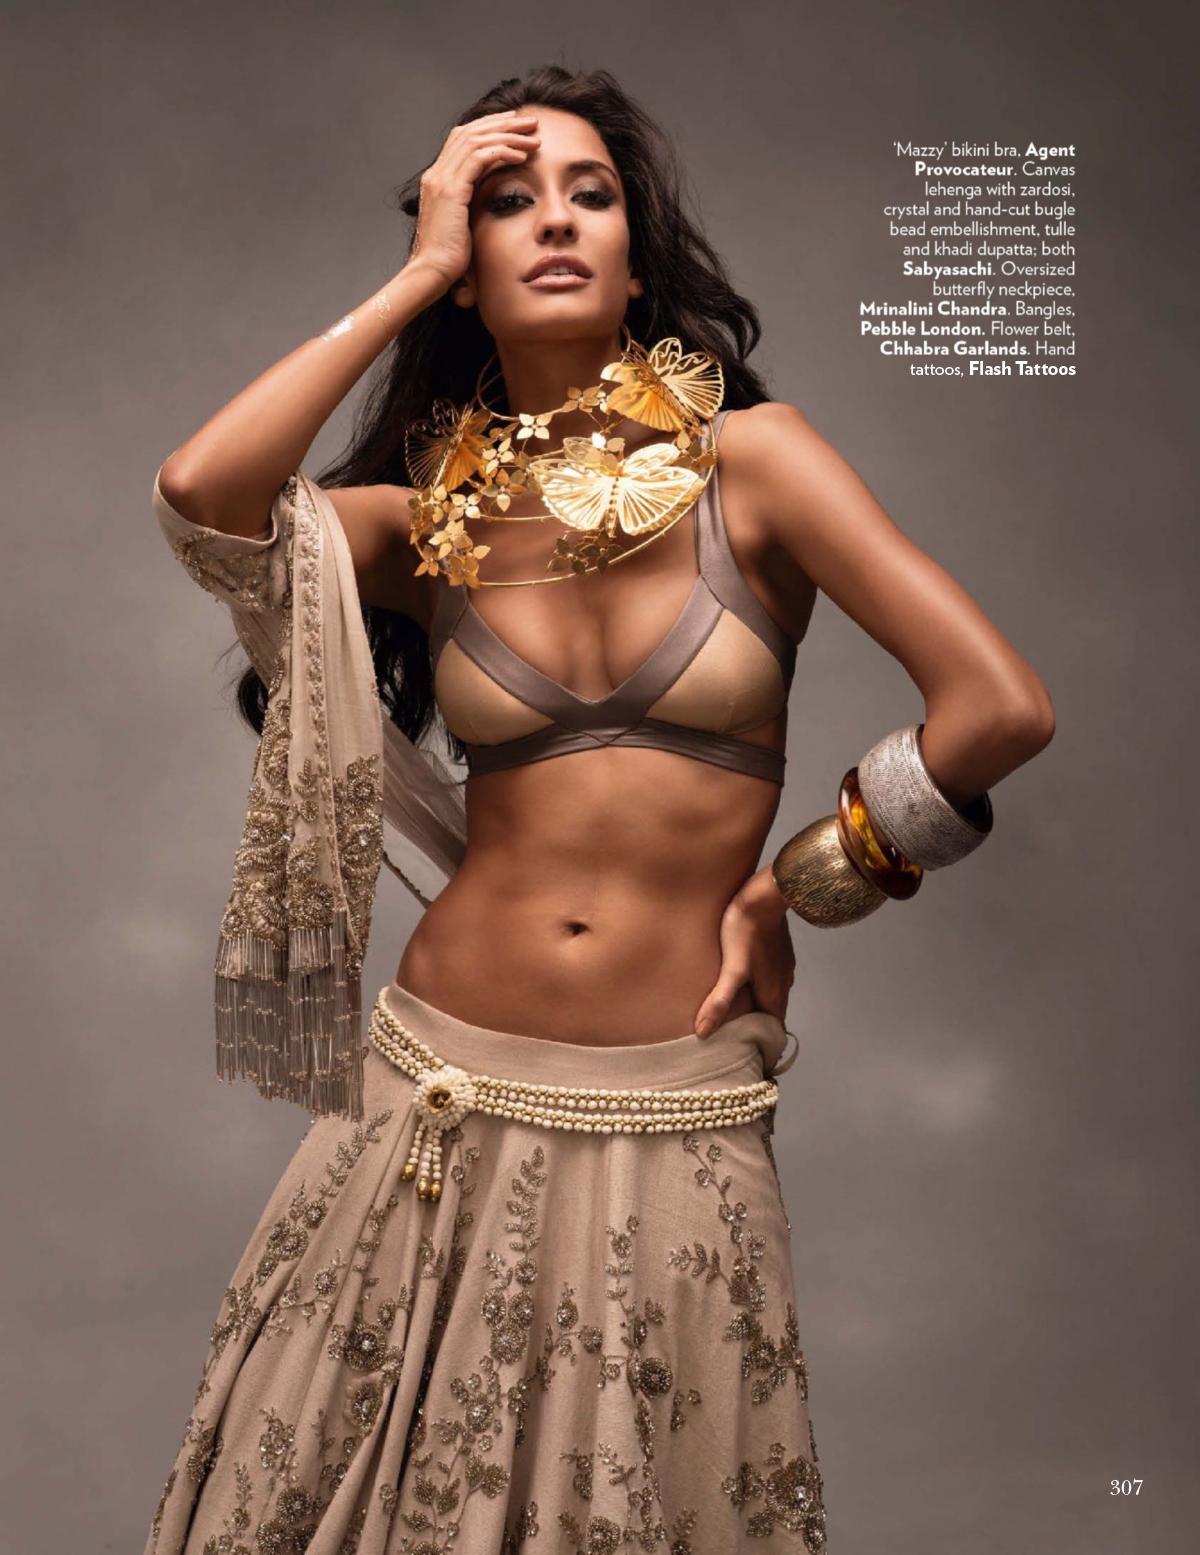 the Citizens of Fashion - Vogue India November 2014 : Bronze Age